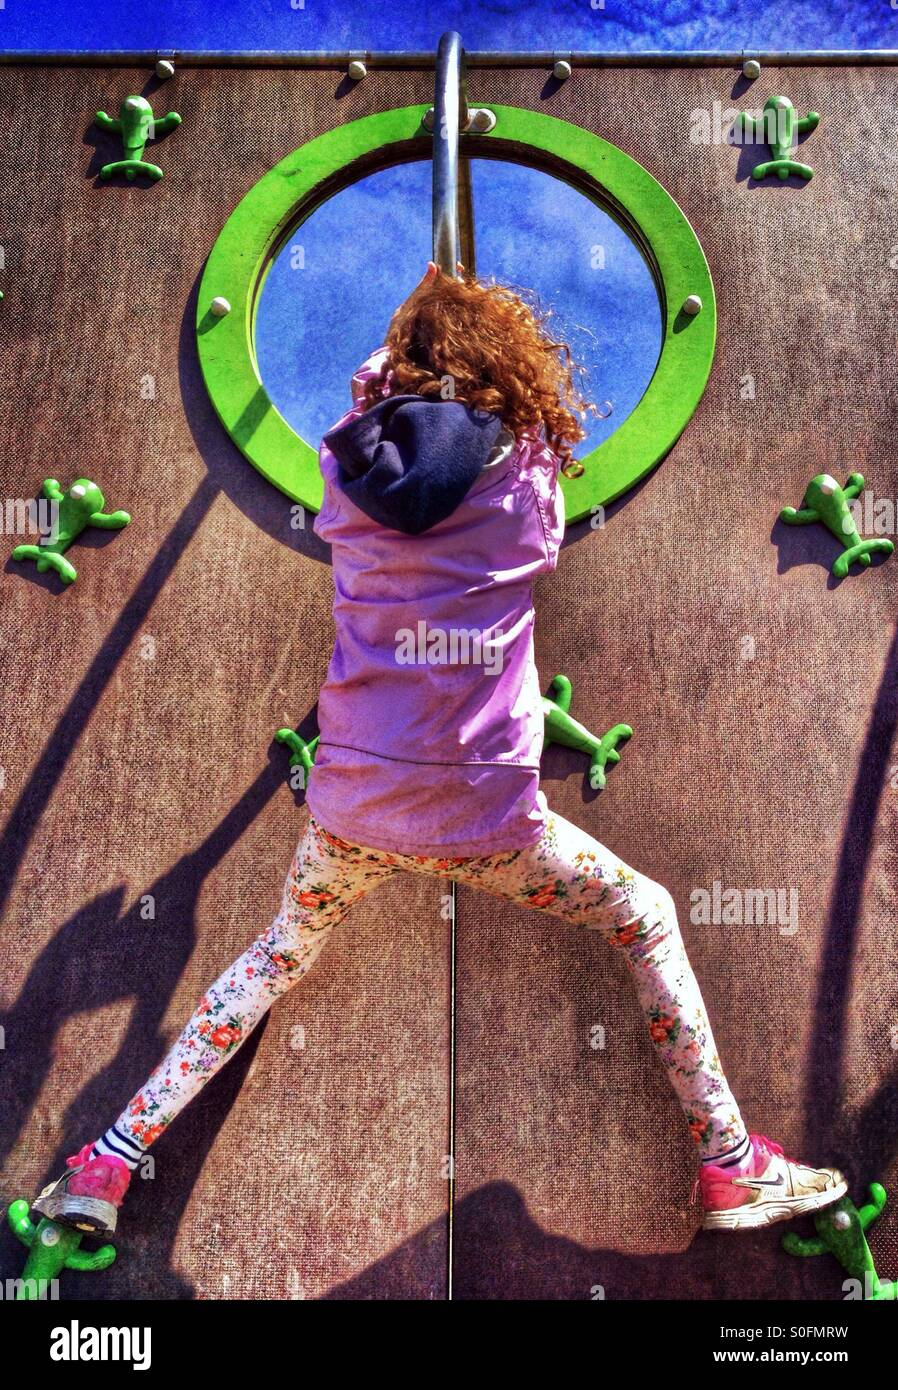 Young girl on climbing wall - Stock Image